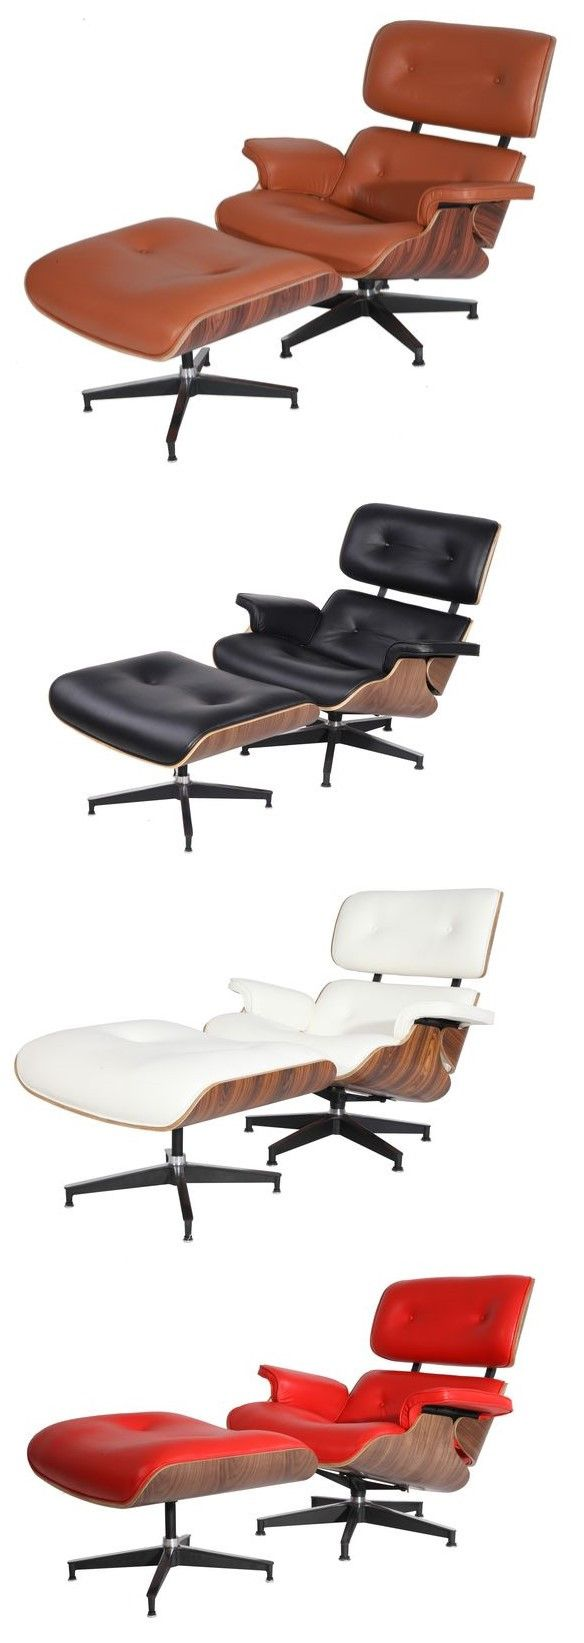 Eames Lounge Chair U0026 Ottoman Replica, High Quality At Perfect Price From  $799 At USMLF